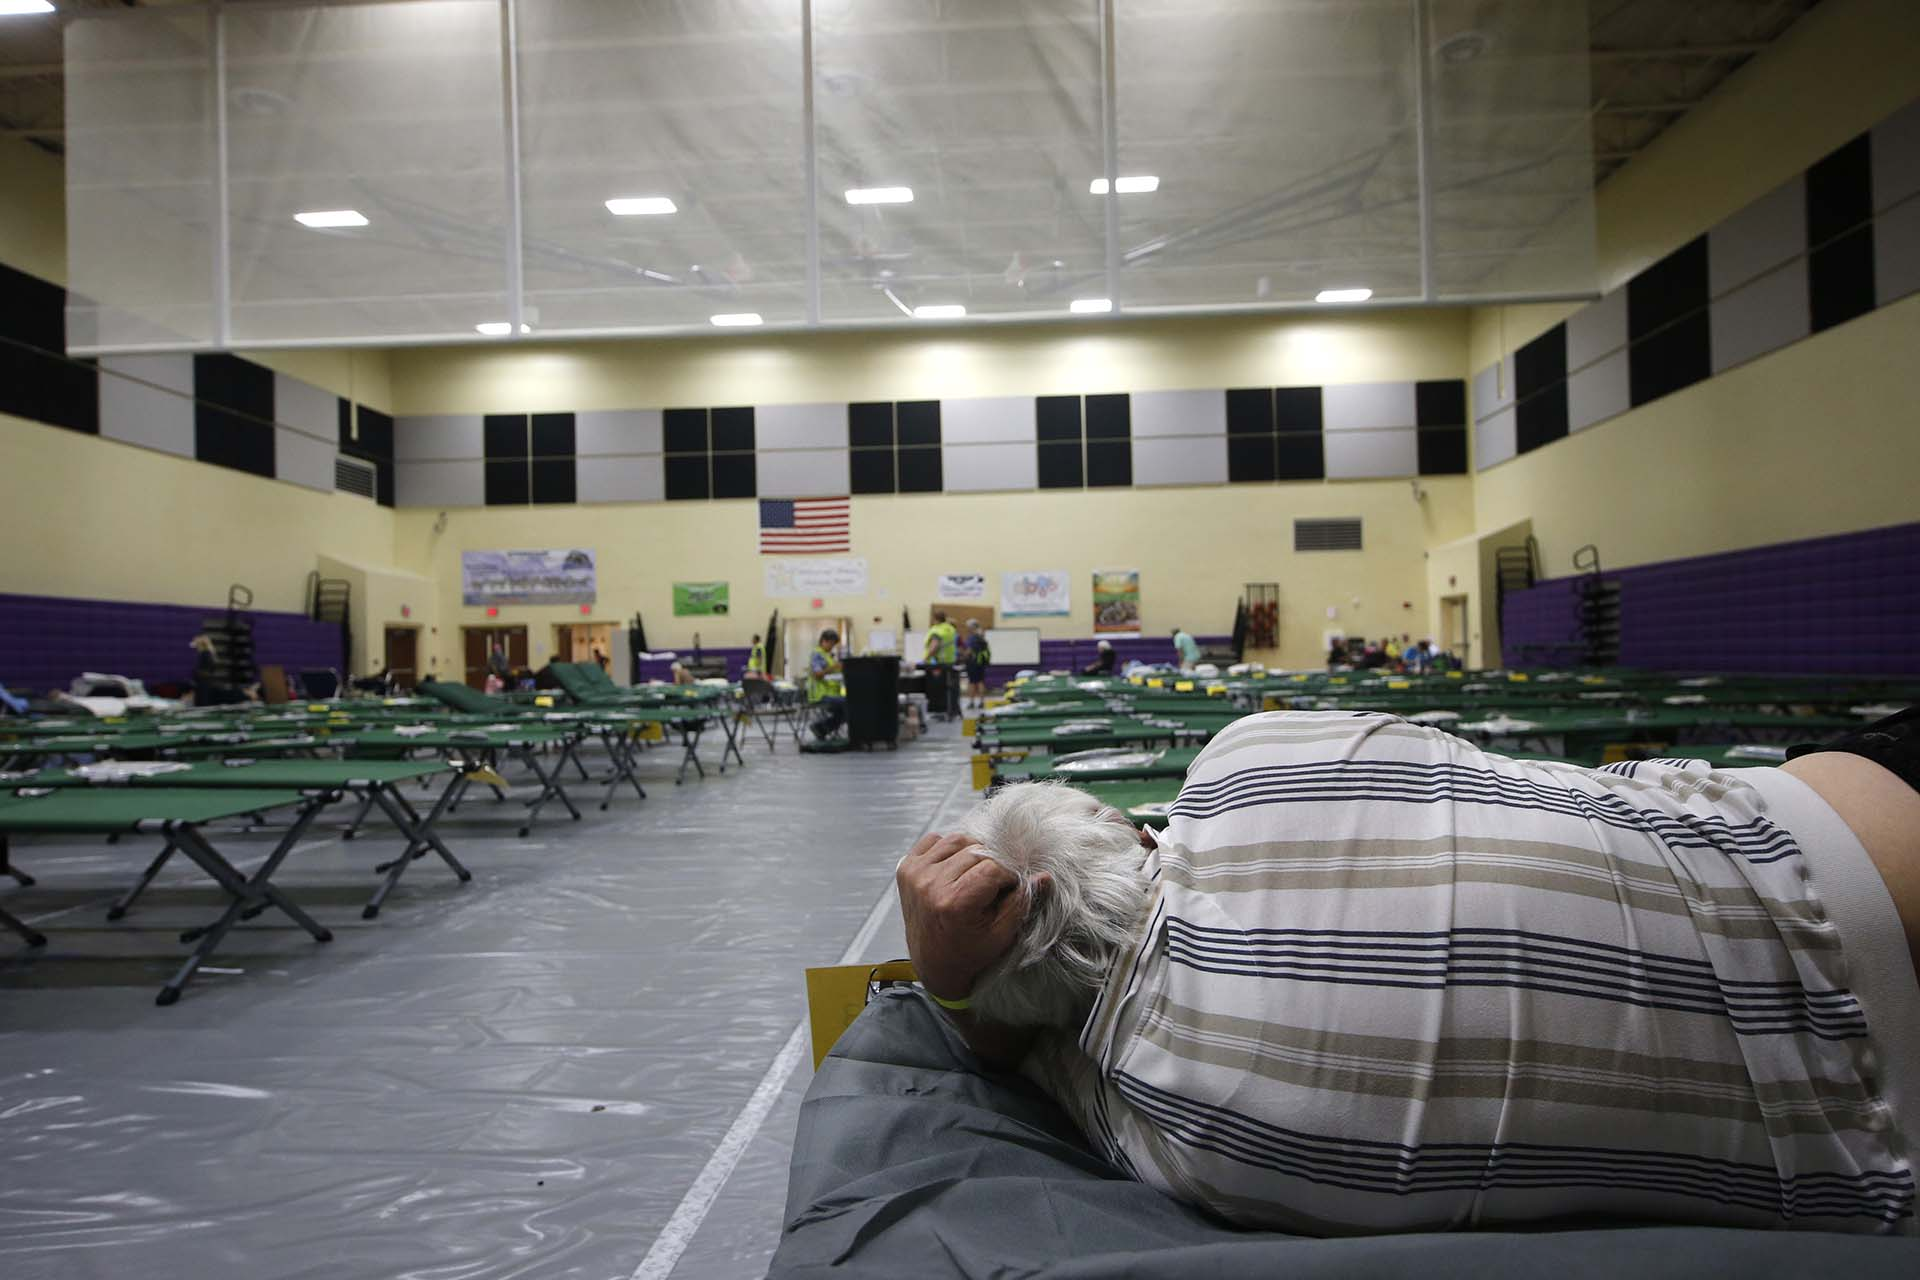 Un refugio en Florida (AP Photo/Gerald Herbert)